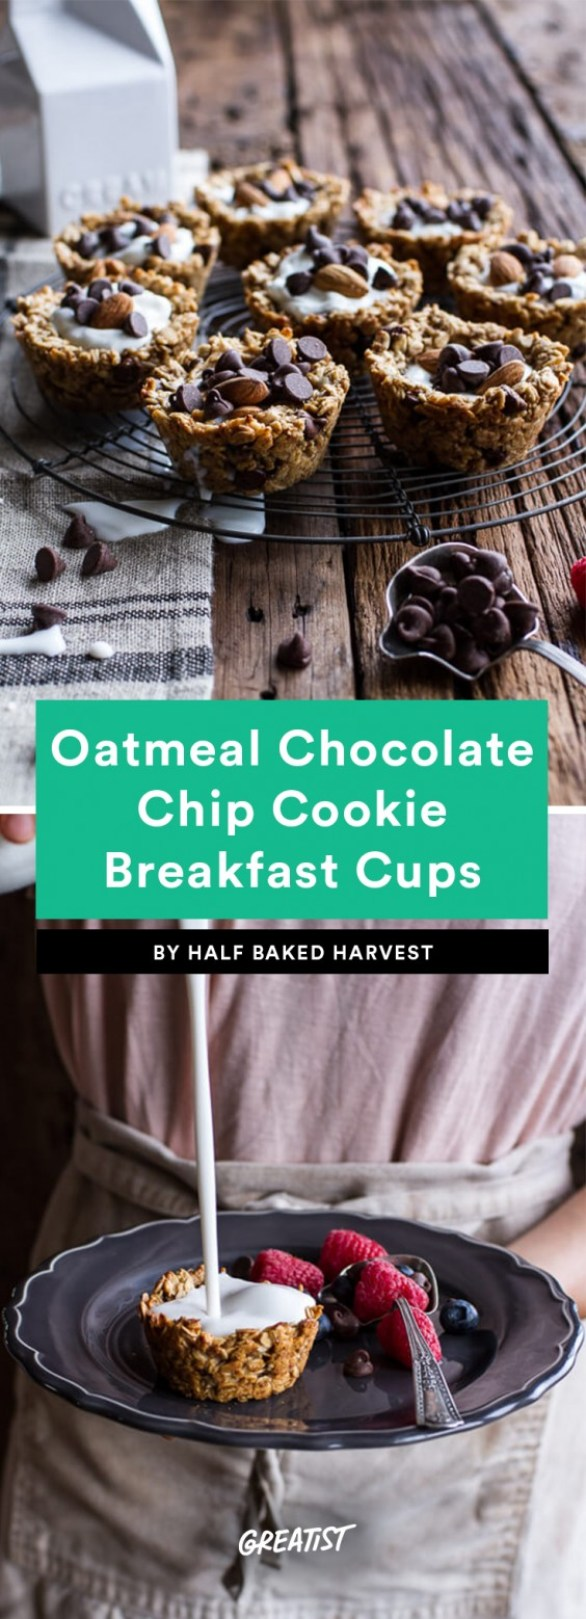 Oatmeal Chocolate Chip Cookie Breakfast Cups